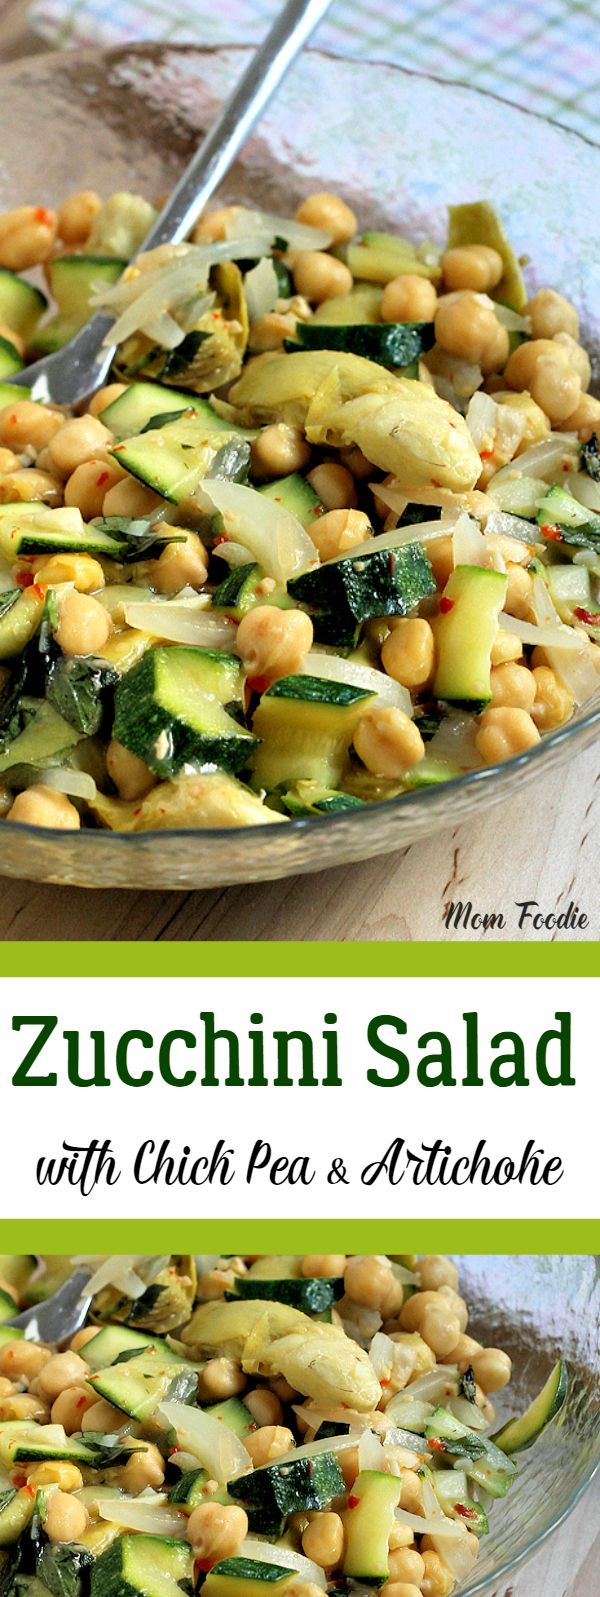 This Zucchini Salad with Chick Pea  Artichoke is what I whipped up for a simple summer dinner tonight. Nope, no in depth recipe planning here, this is fly-by-the-seat-of-your-pants gleaning from the garden and pantry style cooking. The zucchini salad makes for a nice light vegetarian or vegan meal, or a great side for some … Read more in http://natureandhealth.net/